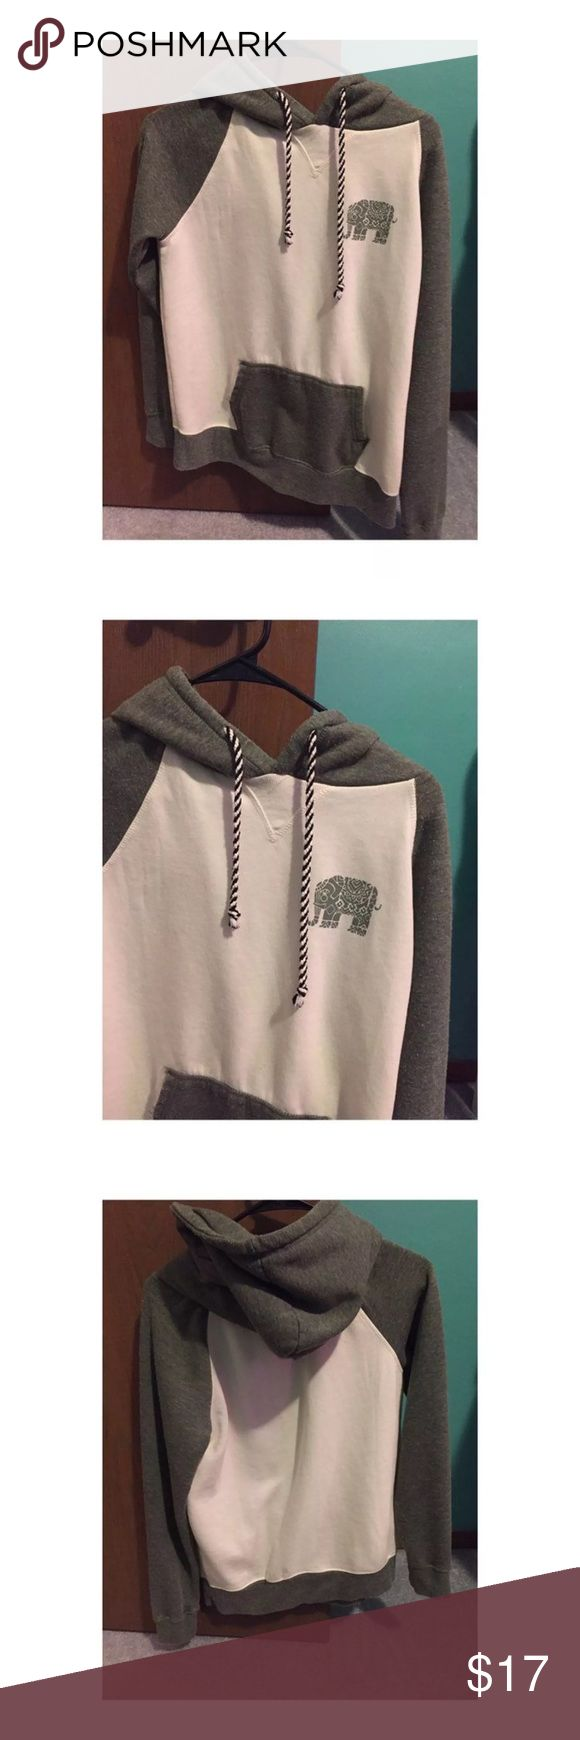 Medium Zumiez women's elephant hoodie Medium women's zumiez. Trillium Chase Olive & Cream Hoodie. Worn once. No rips or stains. moke free! No trades. Sorry I don't hold items. I can't model. NO FREE SHIPPING! FIRM on price! This is my lowest! Zumiez Tops Sweatshirts & Hoodies